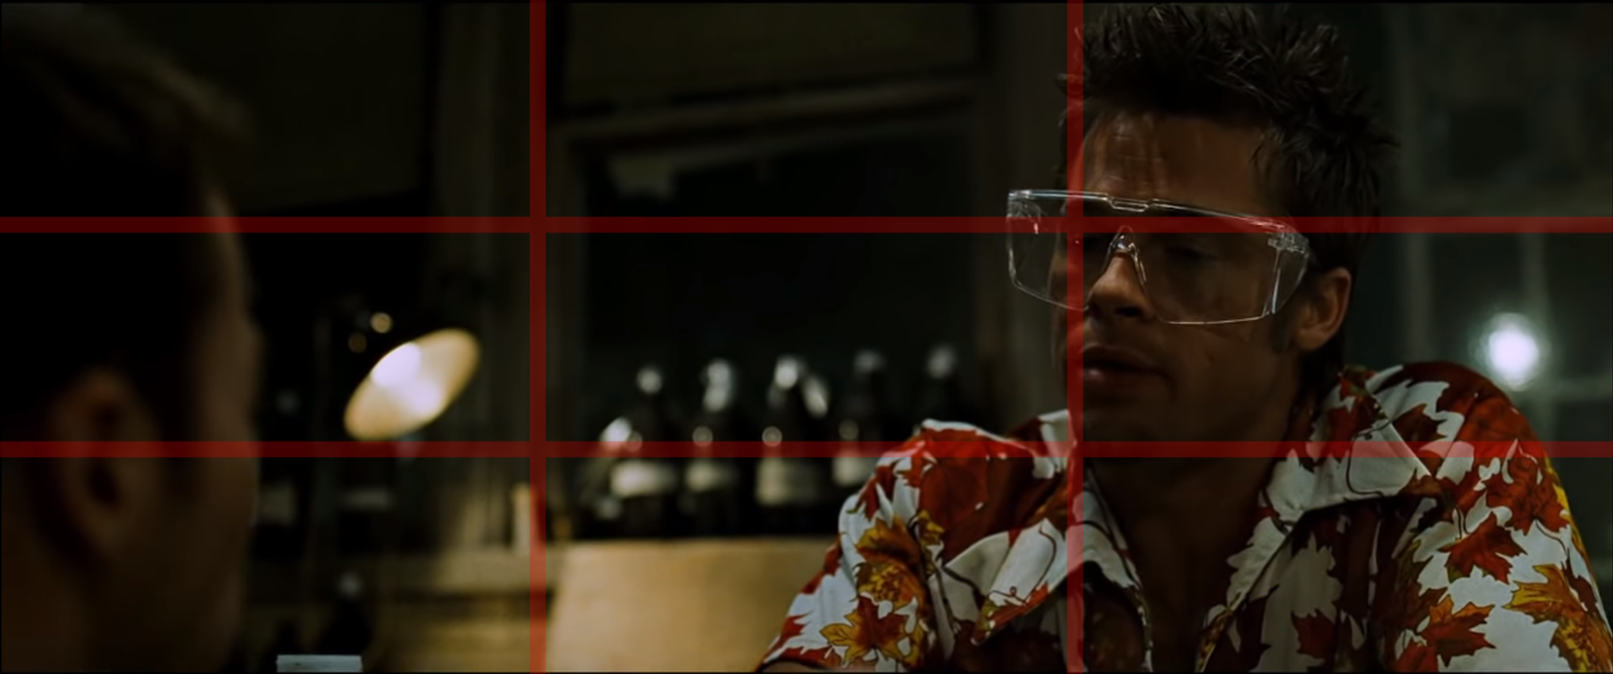 What Do Filmmakers Mean When They Refer to Composition? — Rule of Thirds